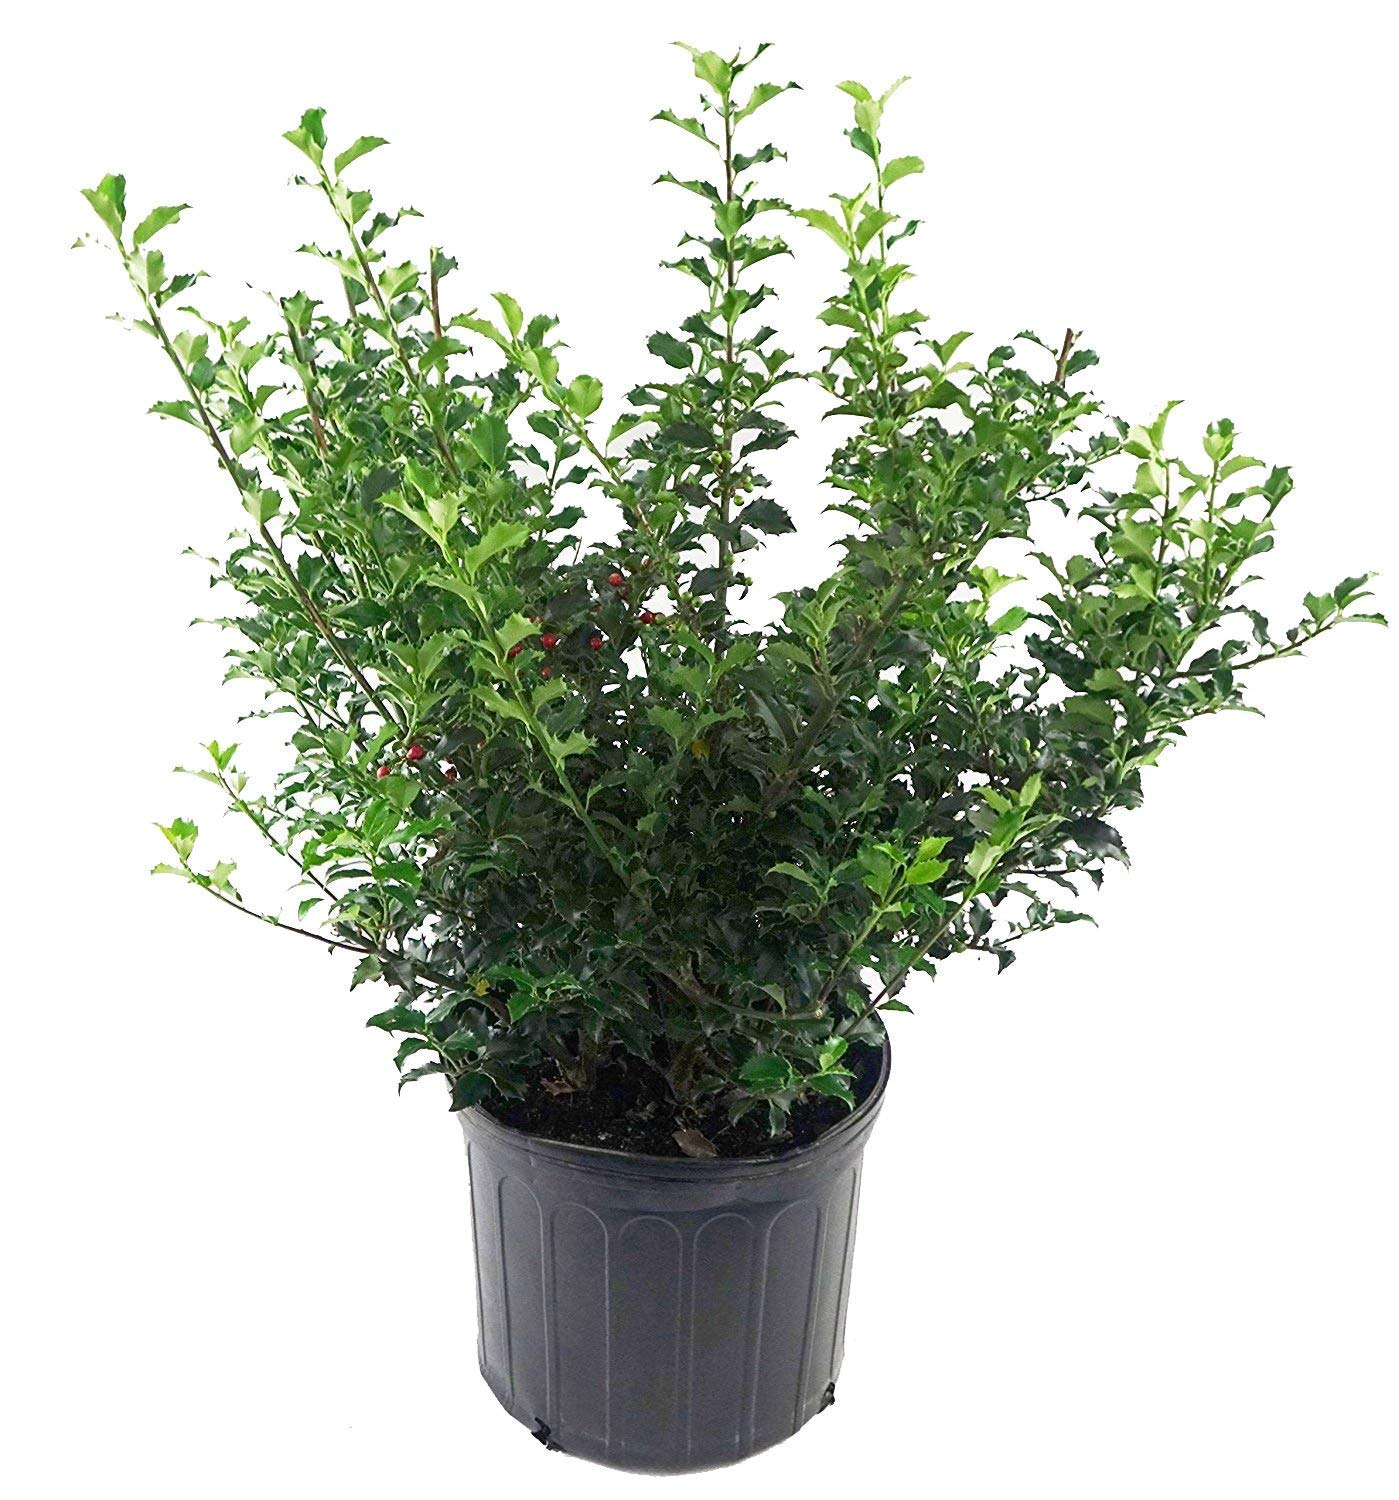 Ilex X meserveae 'Blue Princess' (Blue Holly) Evergreen, #3 - Size Container by Green Promise Farms (Image #2)